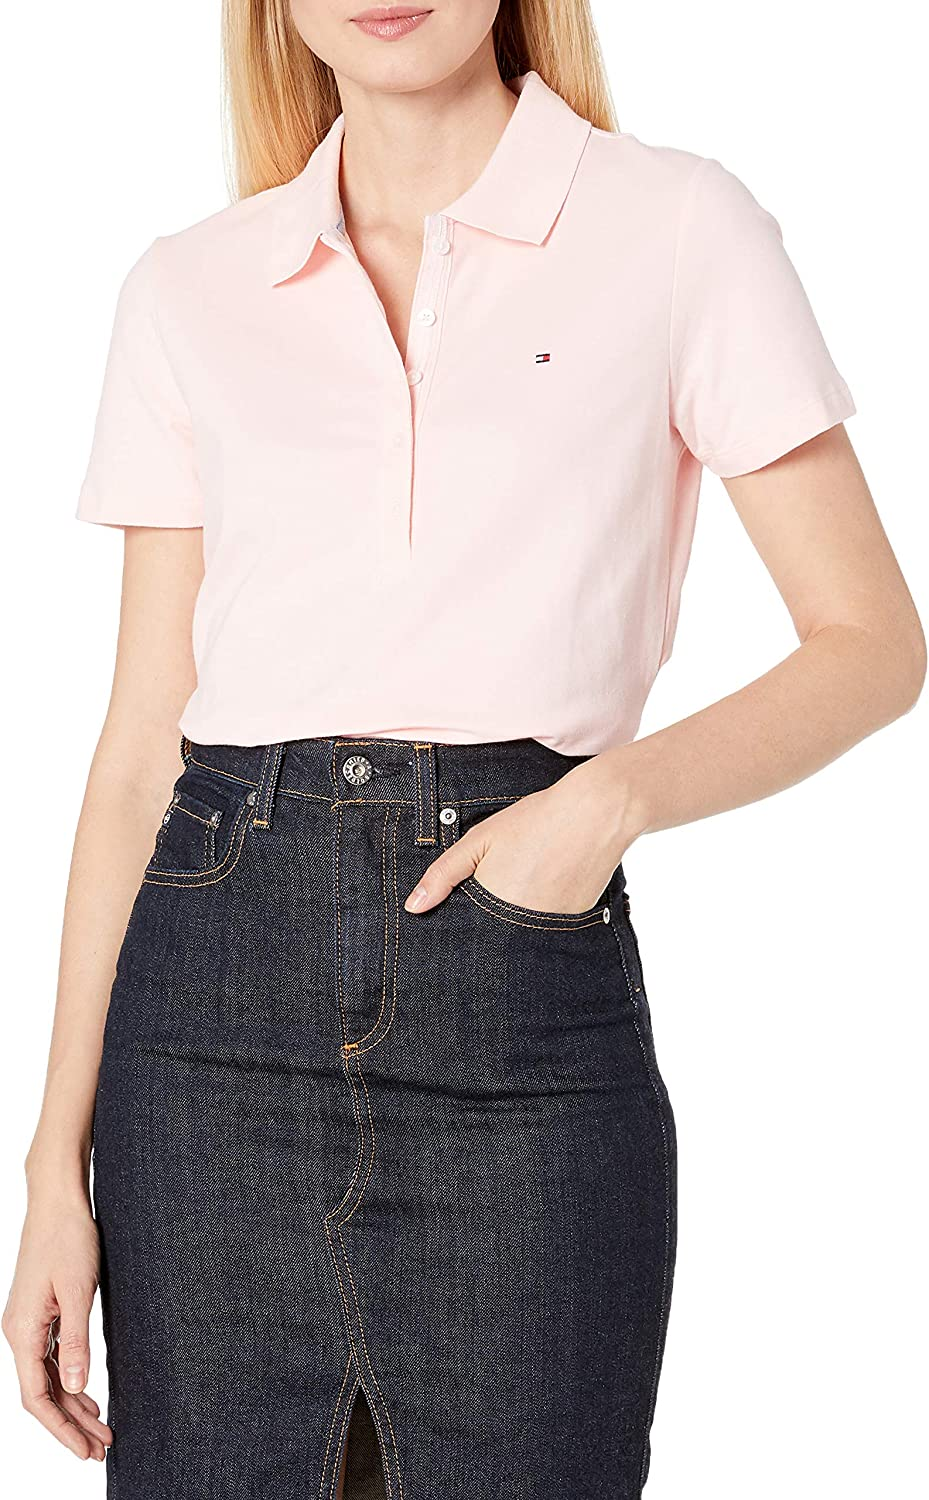 Tommy Hilfiger Women's Short Sleeve Polo (Standard and Plus Size)